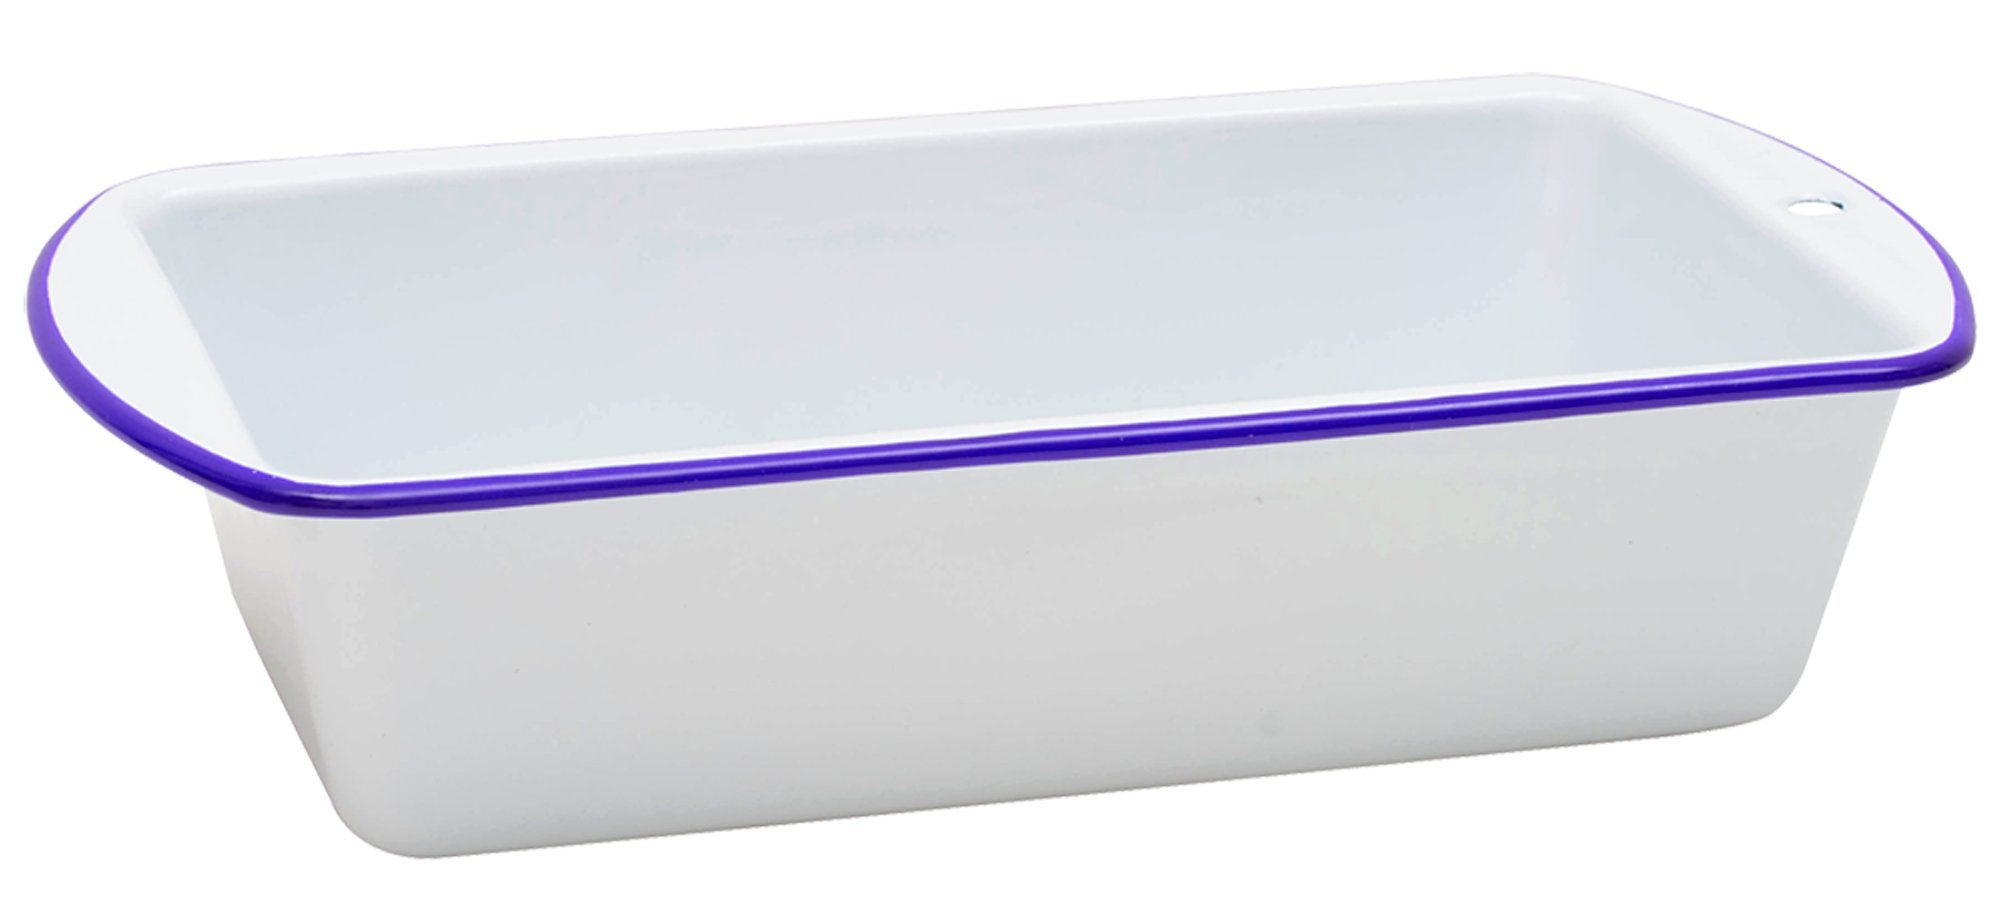 Enamelware Loaf Pan - Solid White with Blue Rim